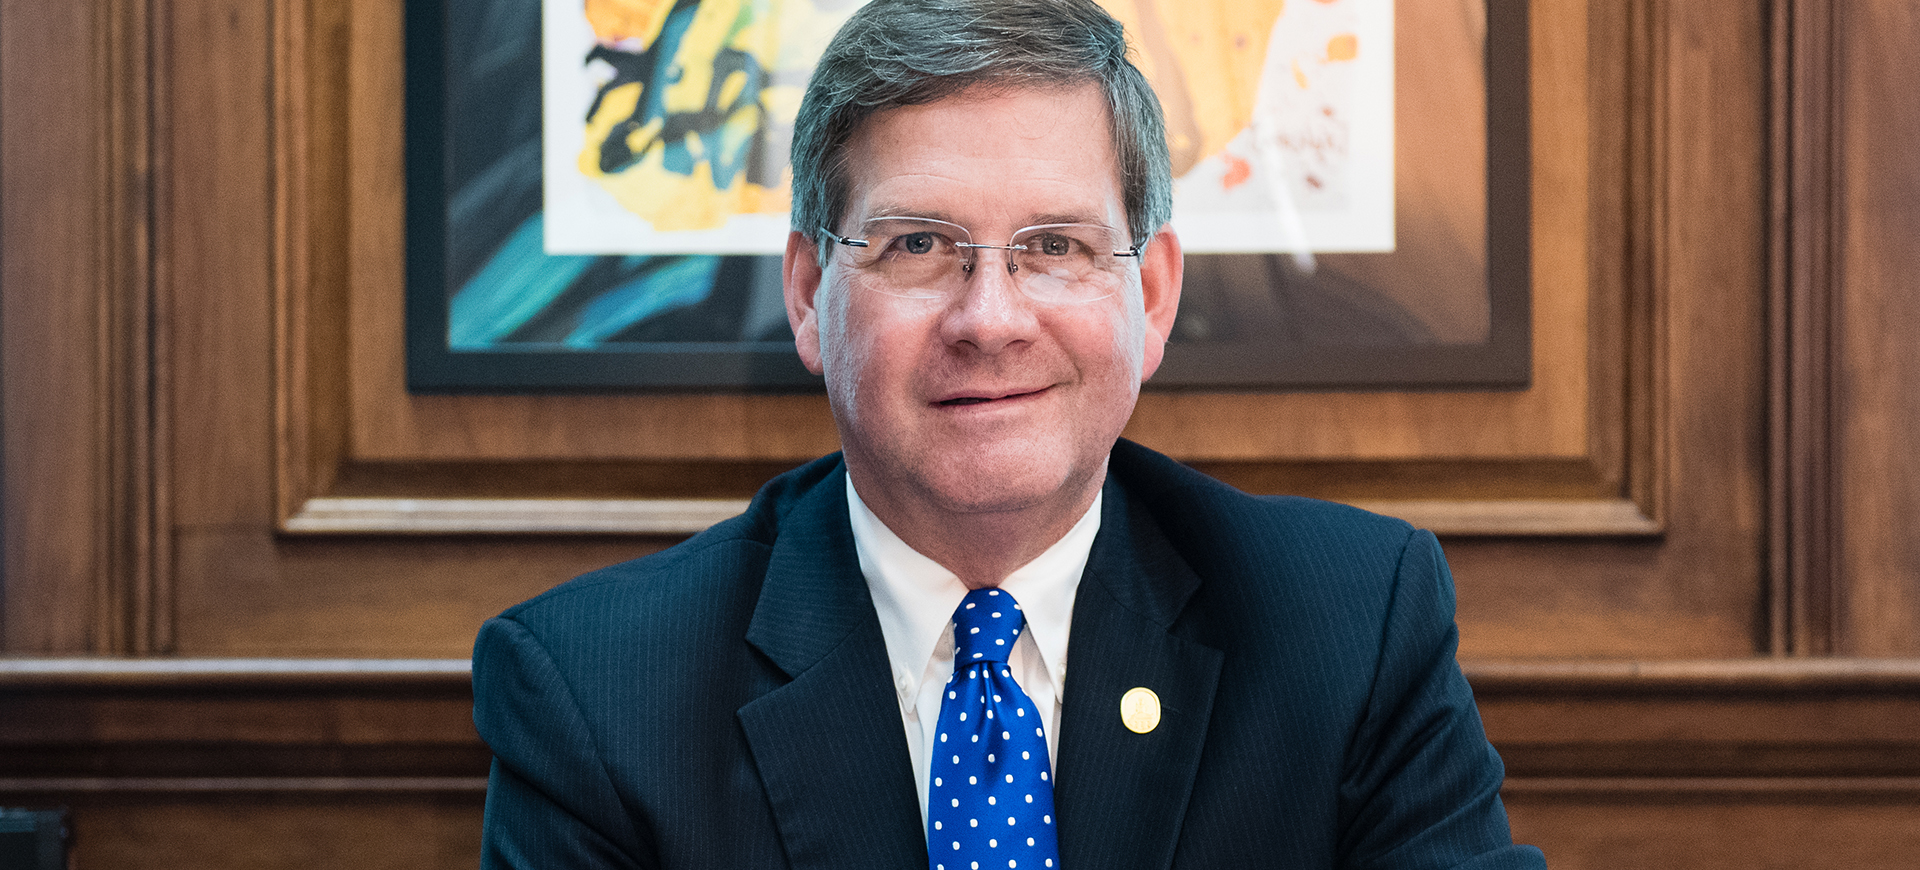 Dr. William Ruud, Marietta College President, will address the Washington State Community College (WSCC) class of 2019 at the college's commencement ceremony on Saturday, May 18, 10 am at the Marietta College Dyson Baudo Recreation Center.